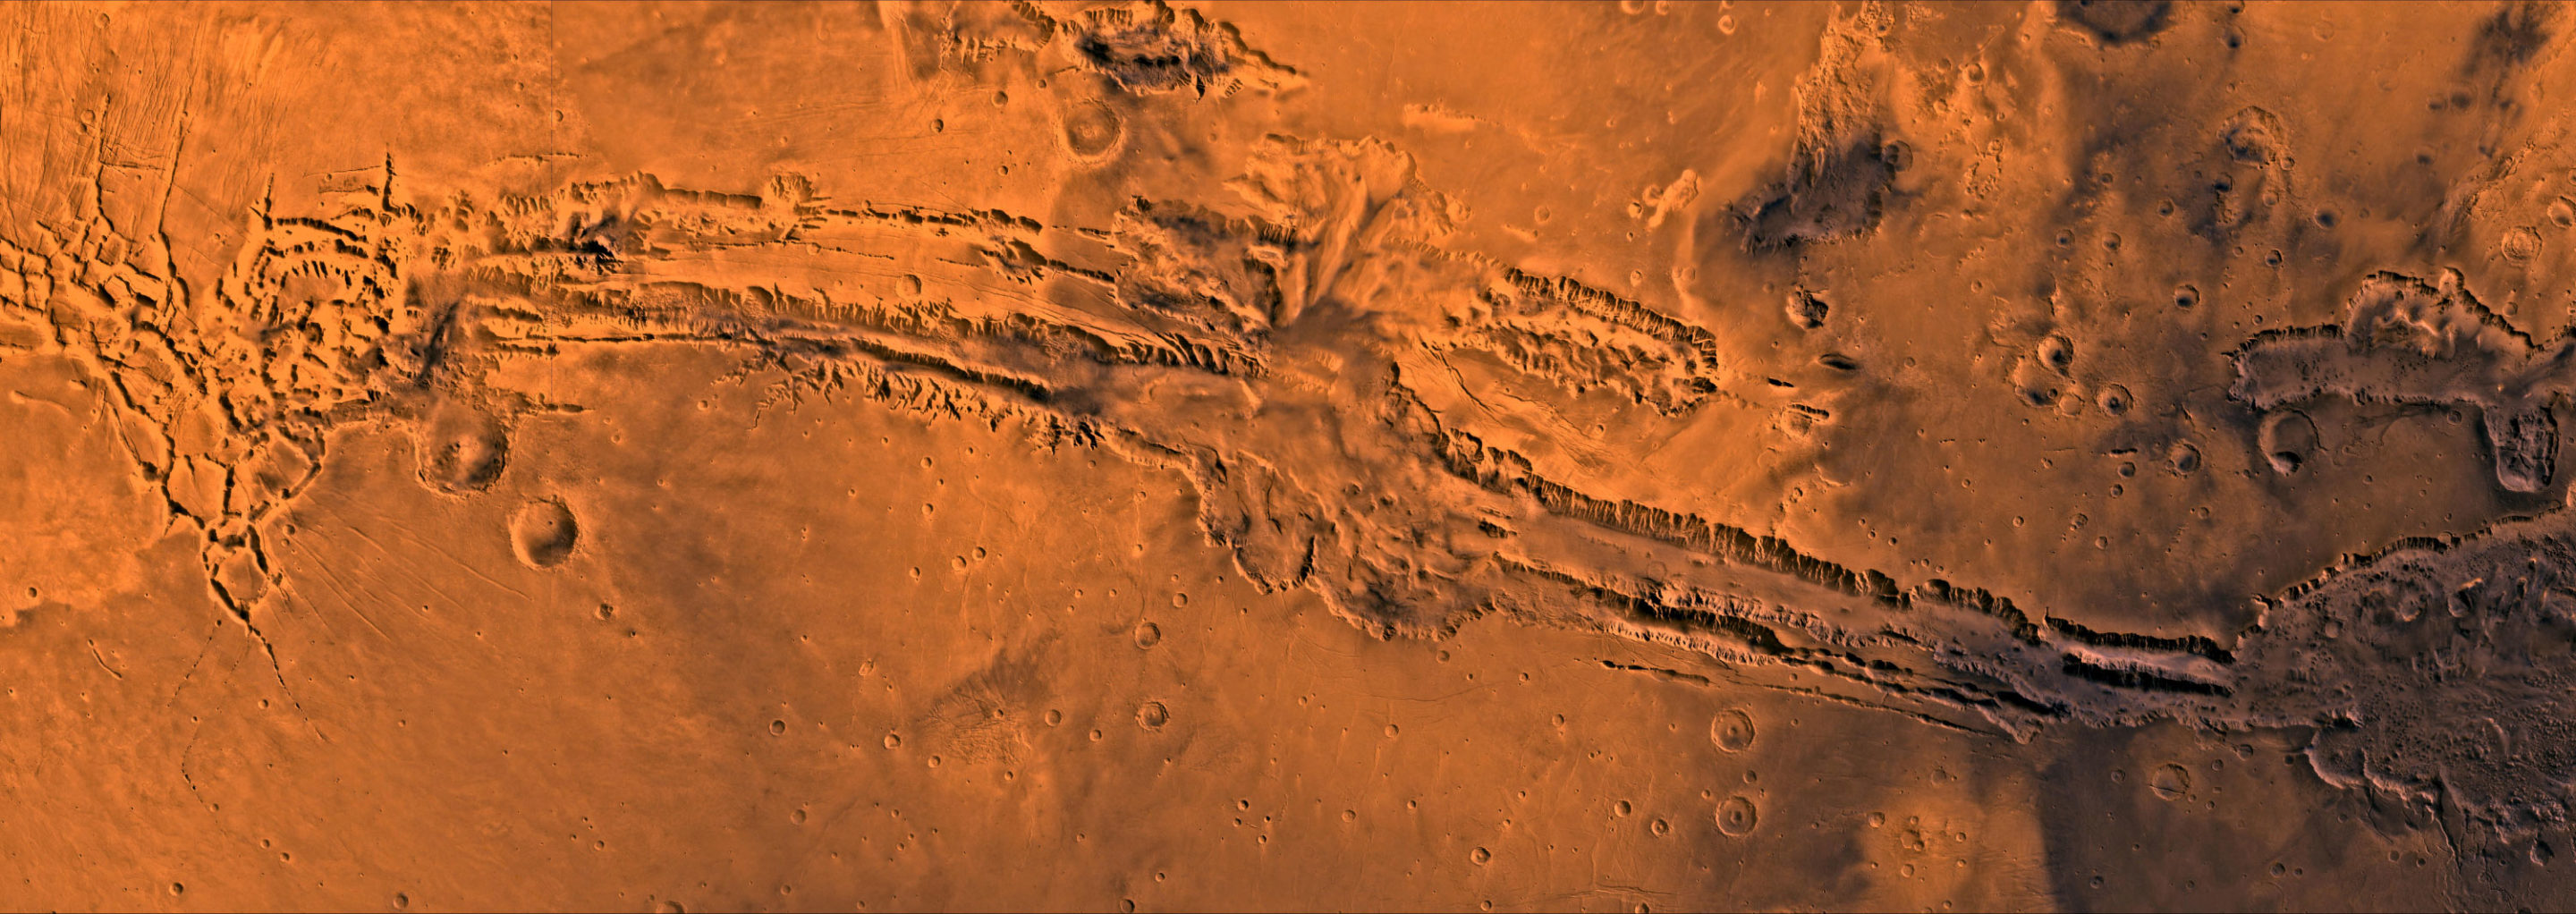 Aerial photo of a canyon on Mars.